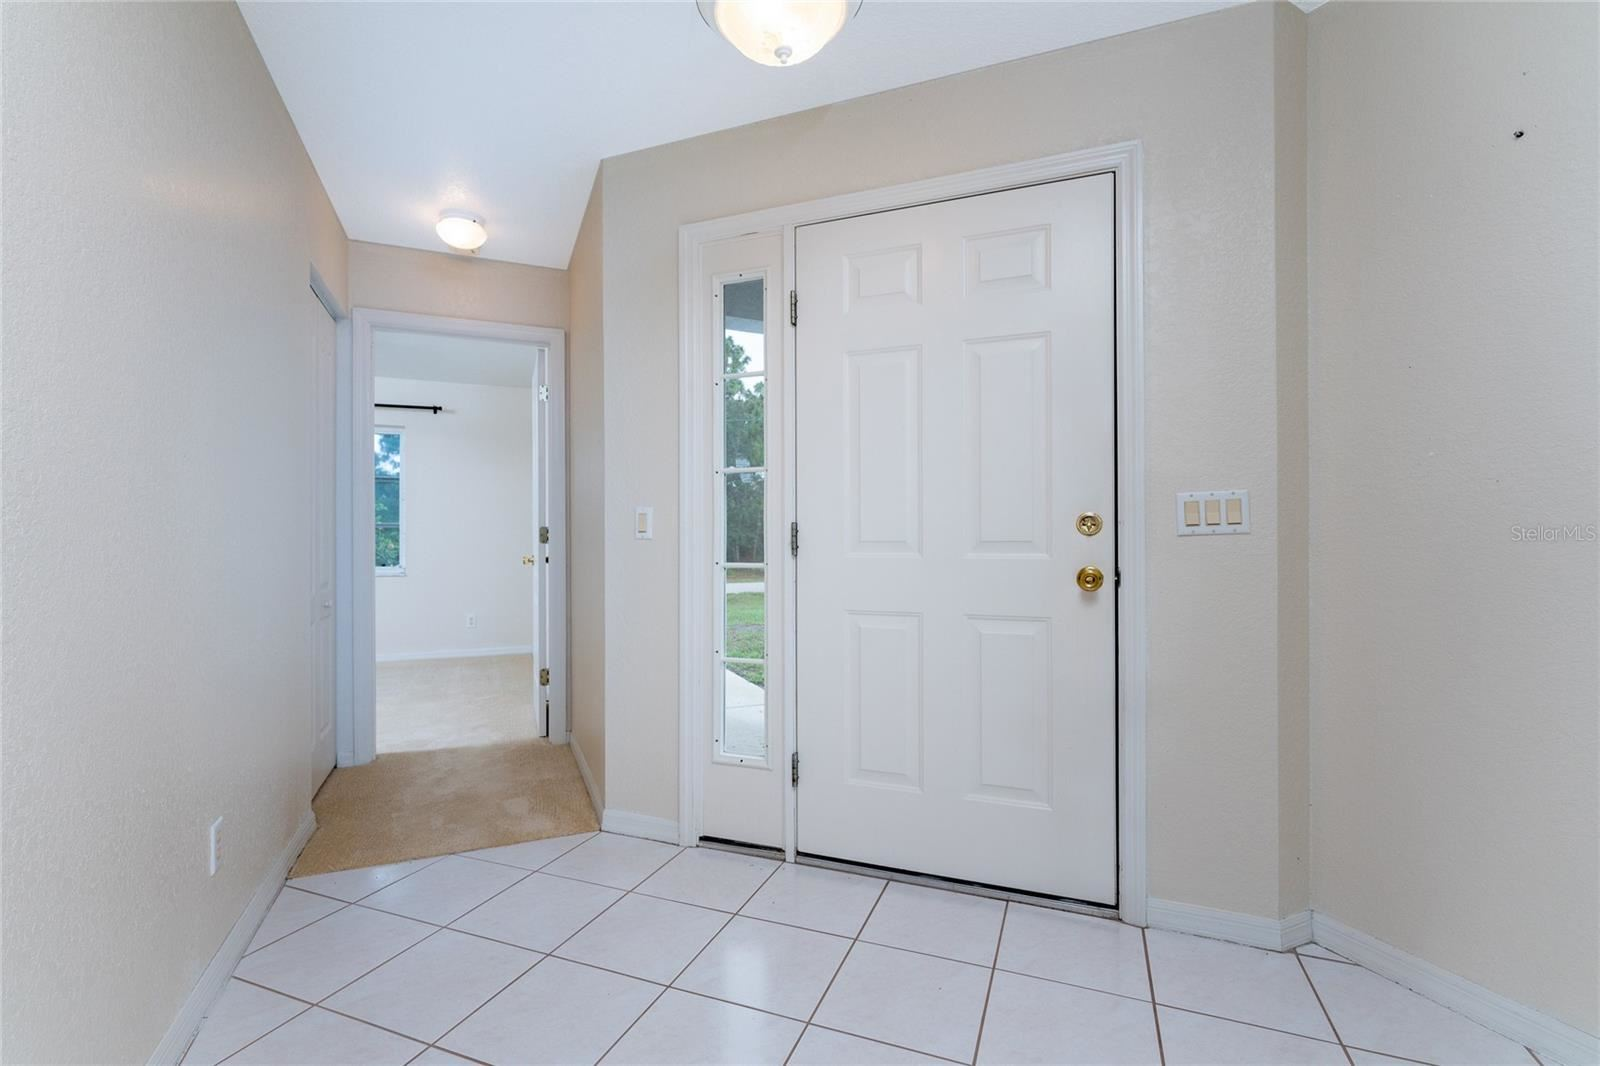 Photo of 7442 GRAND CONCOURSE STREET, ENGLEWOOD, FL 34224 (MLS # D6119500)